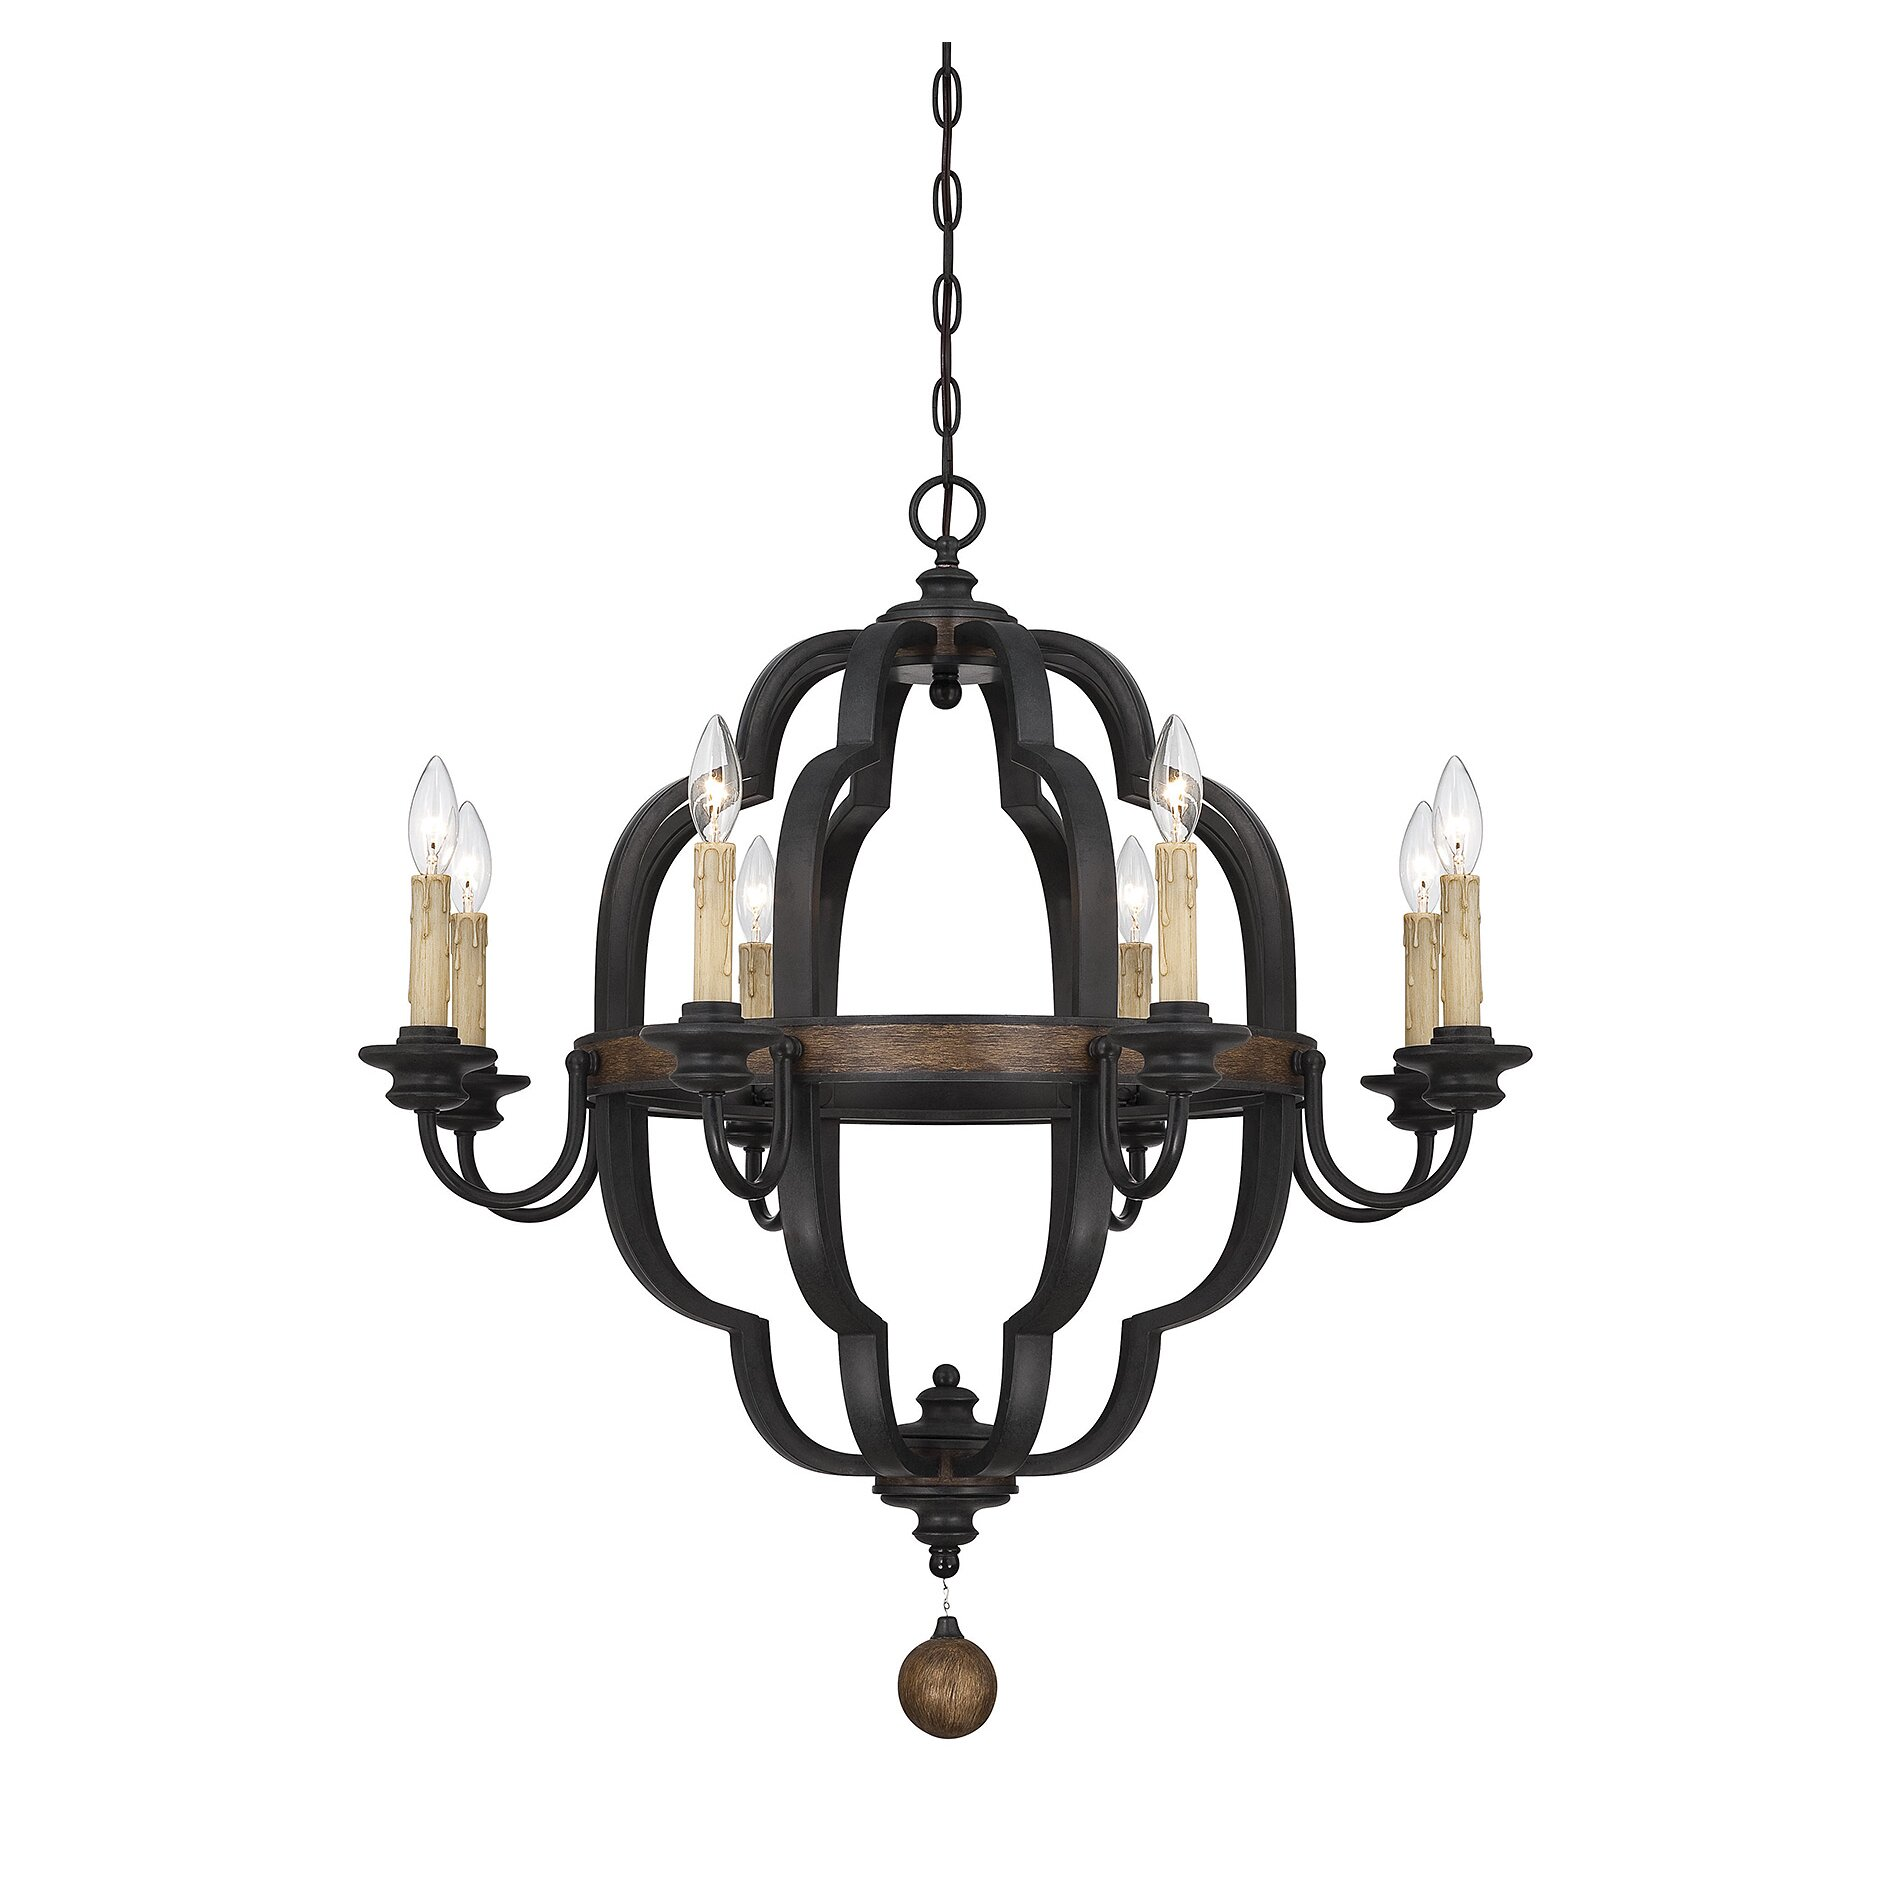 Savoy House Kelsey 8 Light Candle Chandelier amp Reviews  : Savoy House Kelsey 8 Light Candle Chandelier 1 8904 8 41 from www.wayfair.com size 1890 x 1890 jpeg 240kB